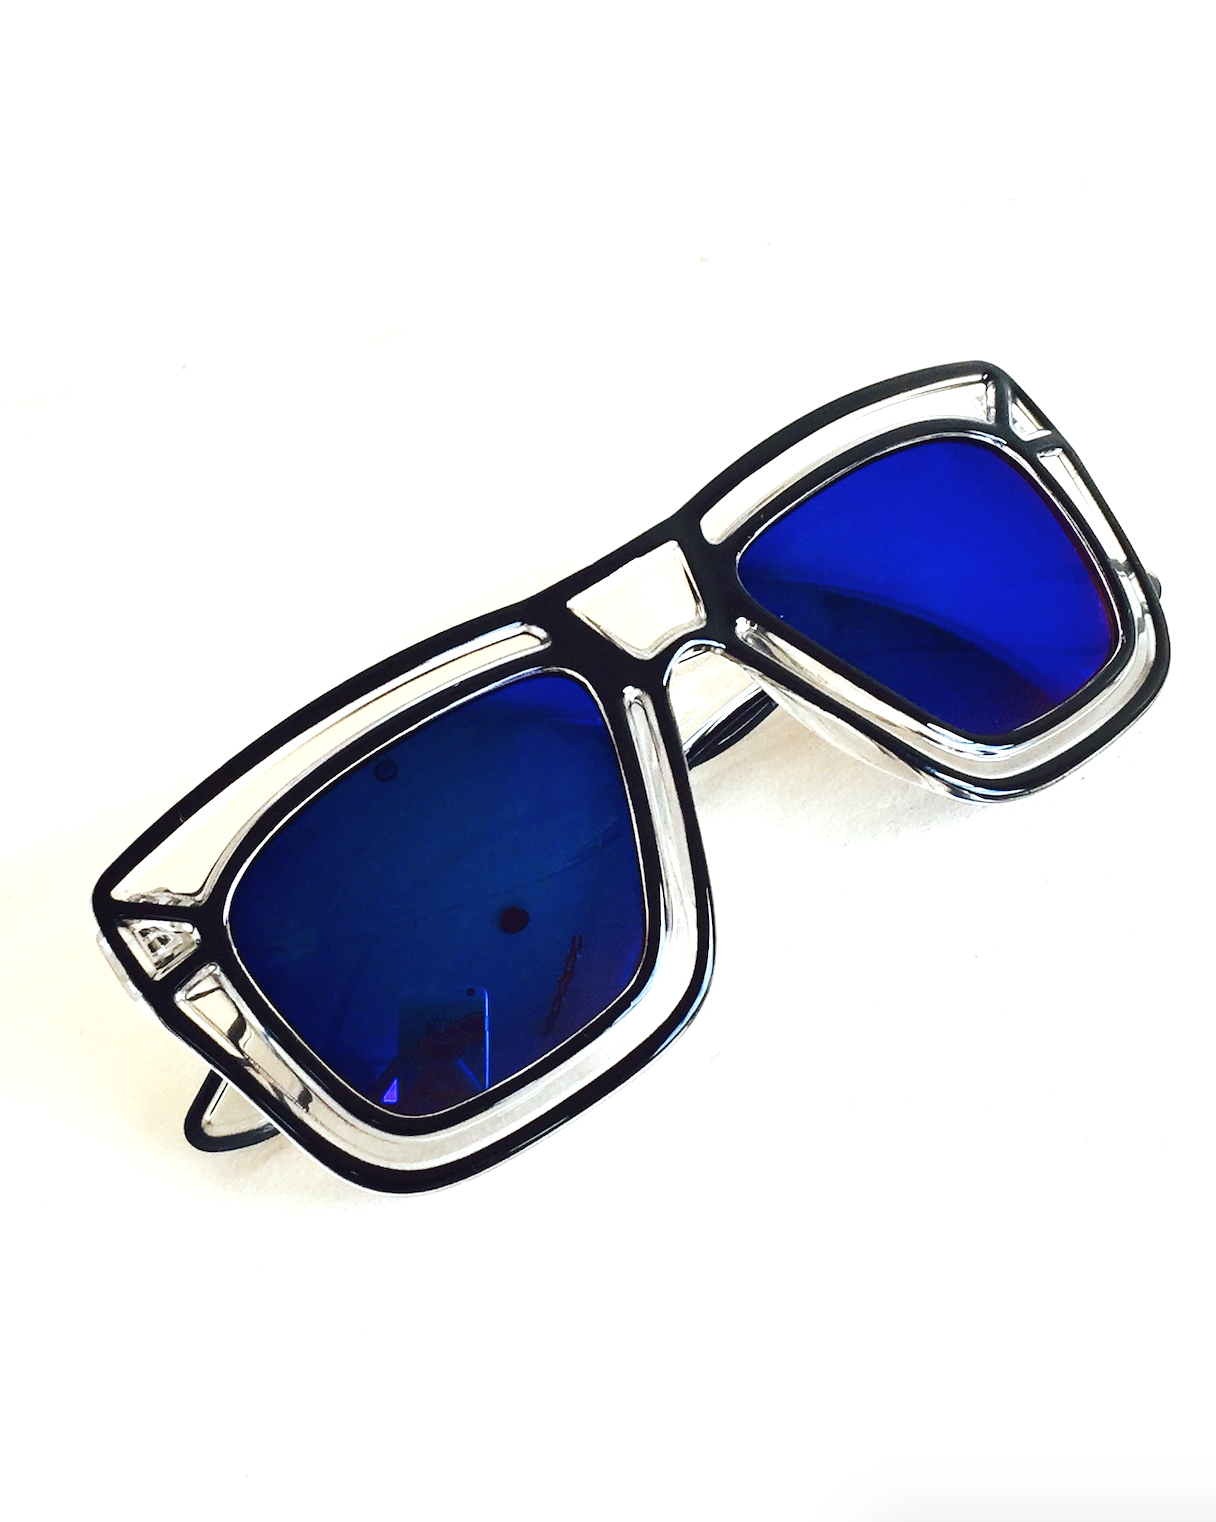 Pop Art Shades with Mirror Blue Lenses